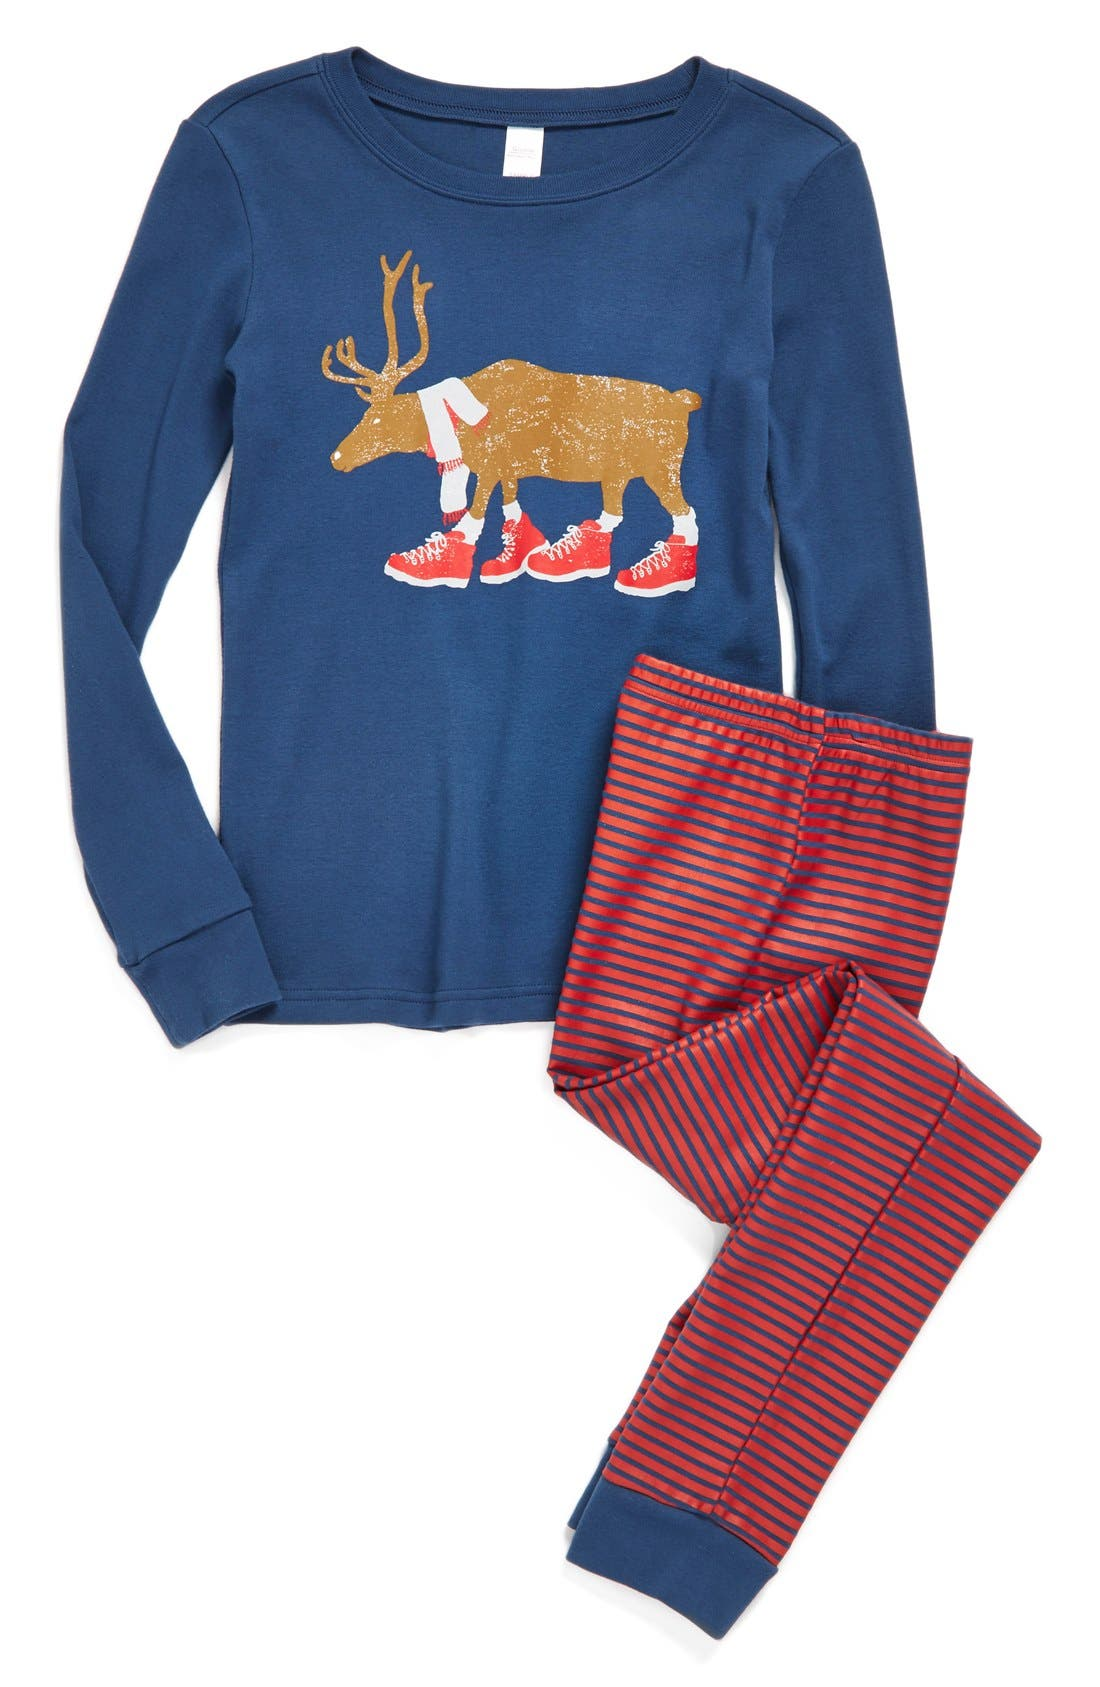 Fitted Two-Piece Pajamas,                             Main thumbnail 1, color,                             Navy Denim Reindeer